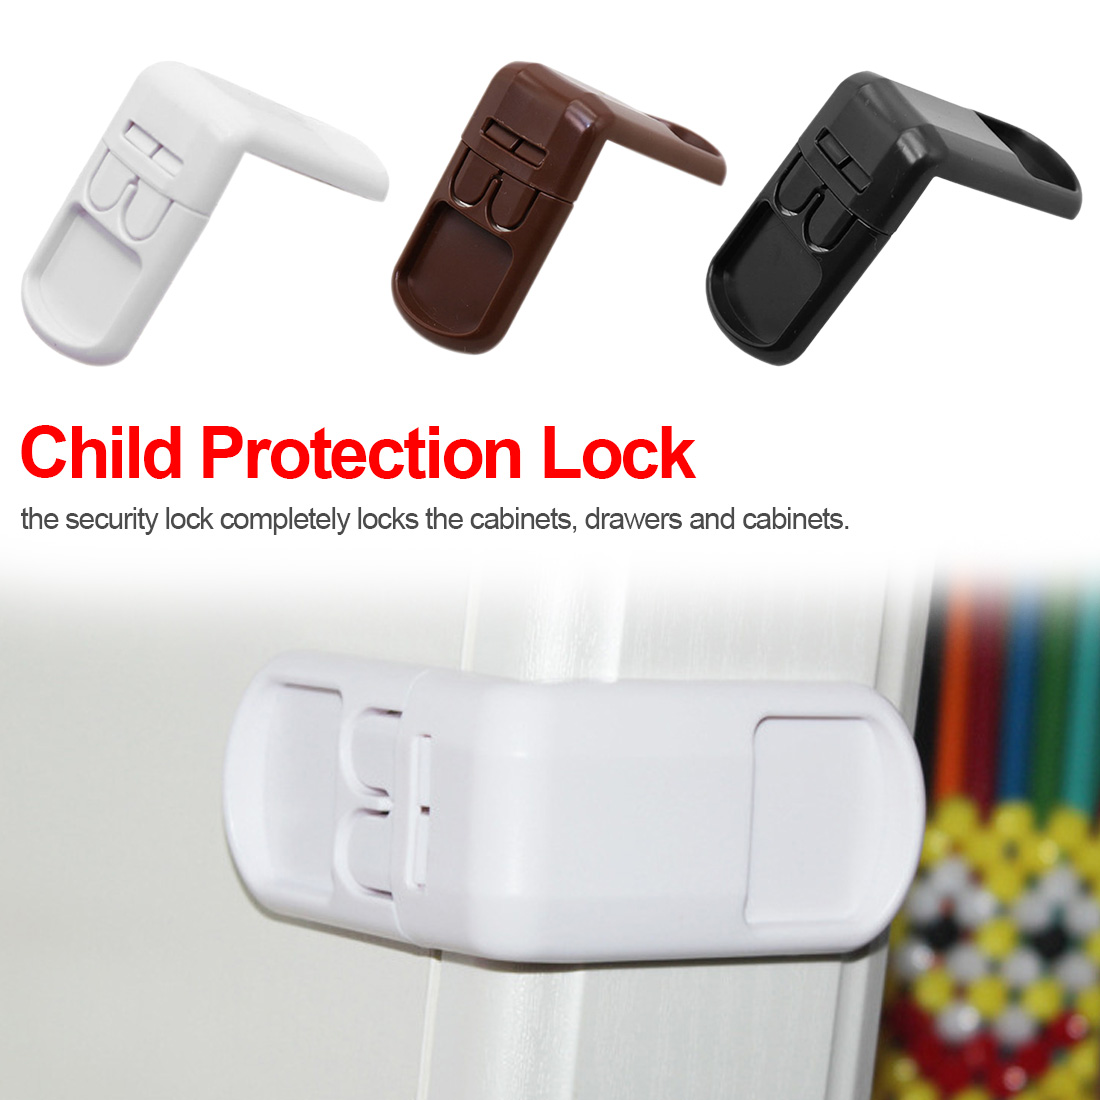 4Pcs/lot Baby Safety Protector Child Cabinet Locking Plastic Lock Protection Of Children Locking From Doors Drawers Box Lock